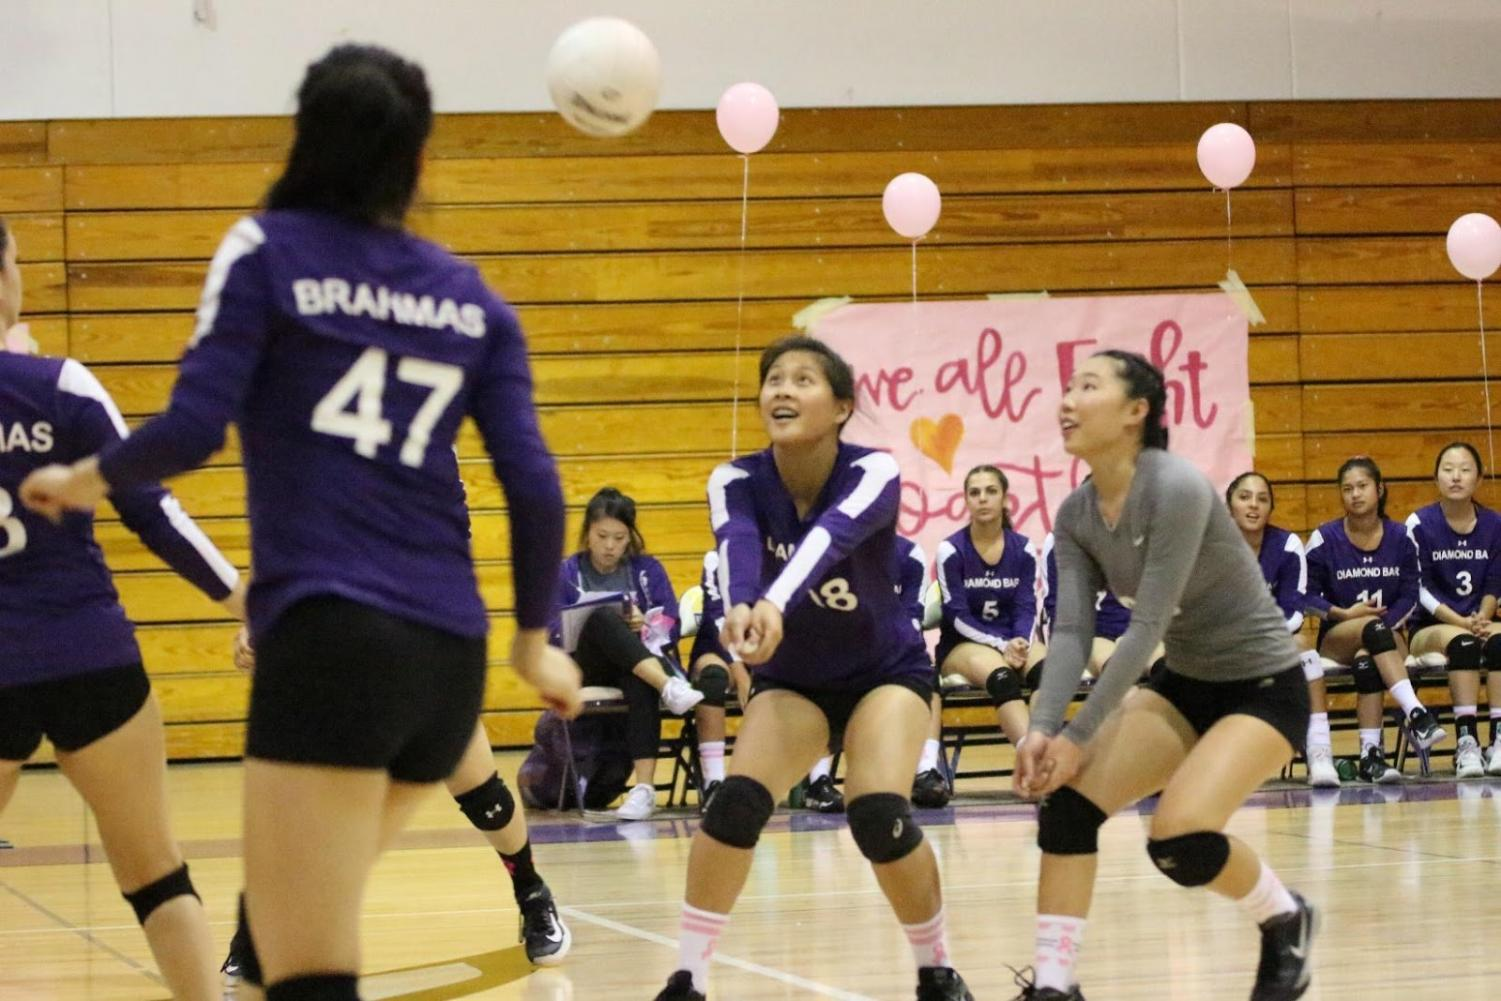 Angela+Zhang%2C+Lauren+Chang%2C+and+Joycelyn+Ung+return+the+ball+against+Chaffey+while+Kim+Flores+spikes+in+the+3-0+win.%0A%0A